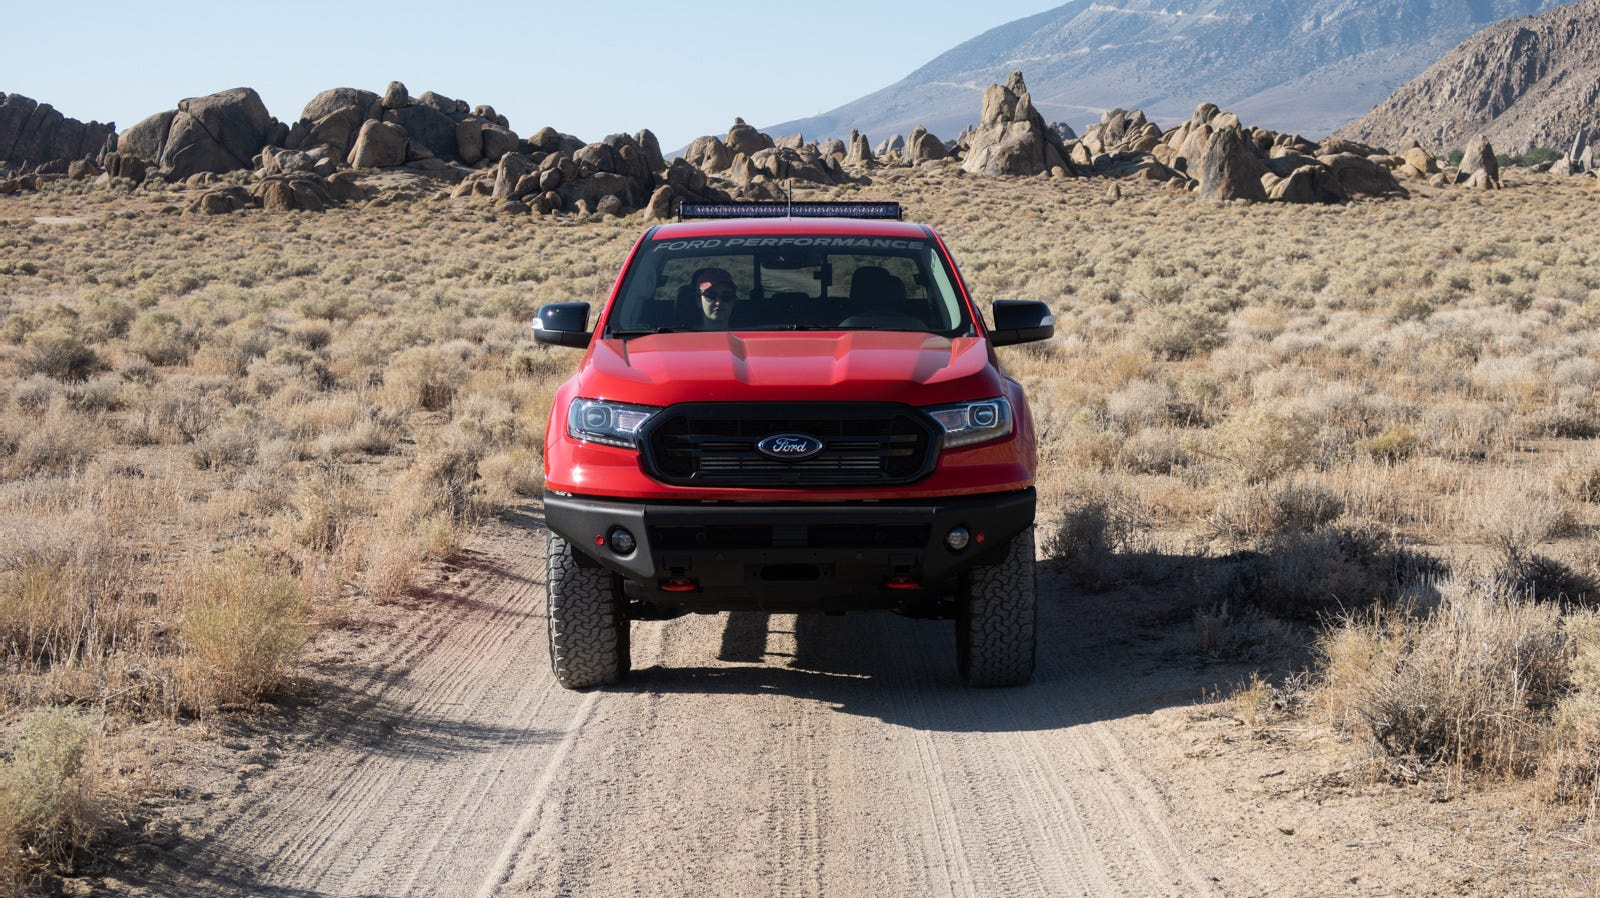 Illustration for article titled Why The $9,000 Ford Ranger Performance Level 3 Upgrade Might Actually Be Worth It